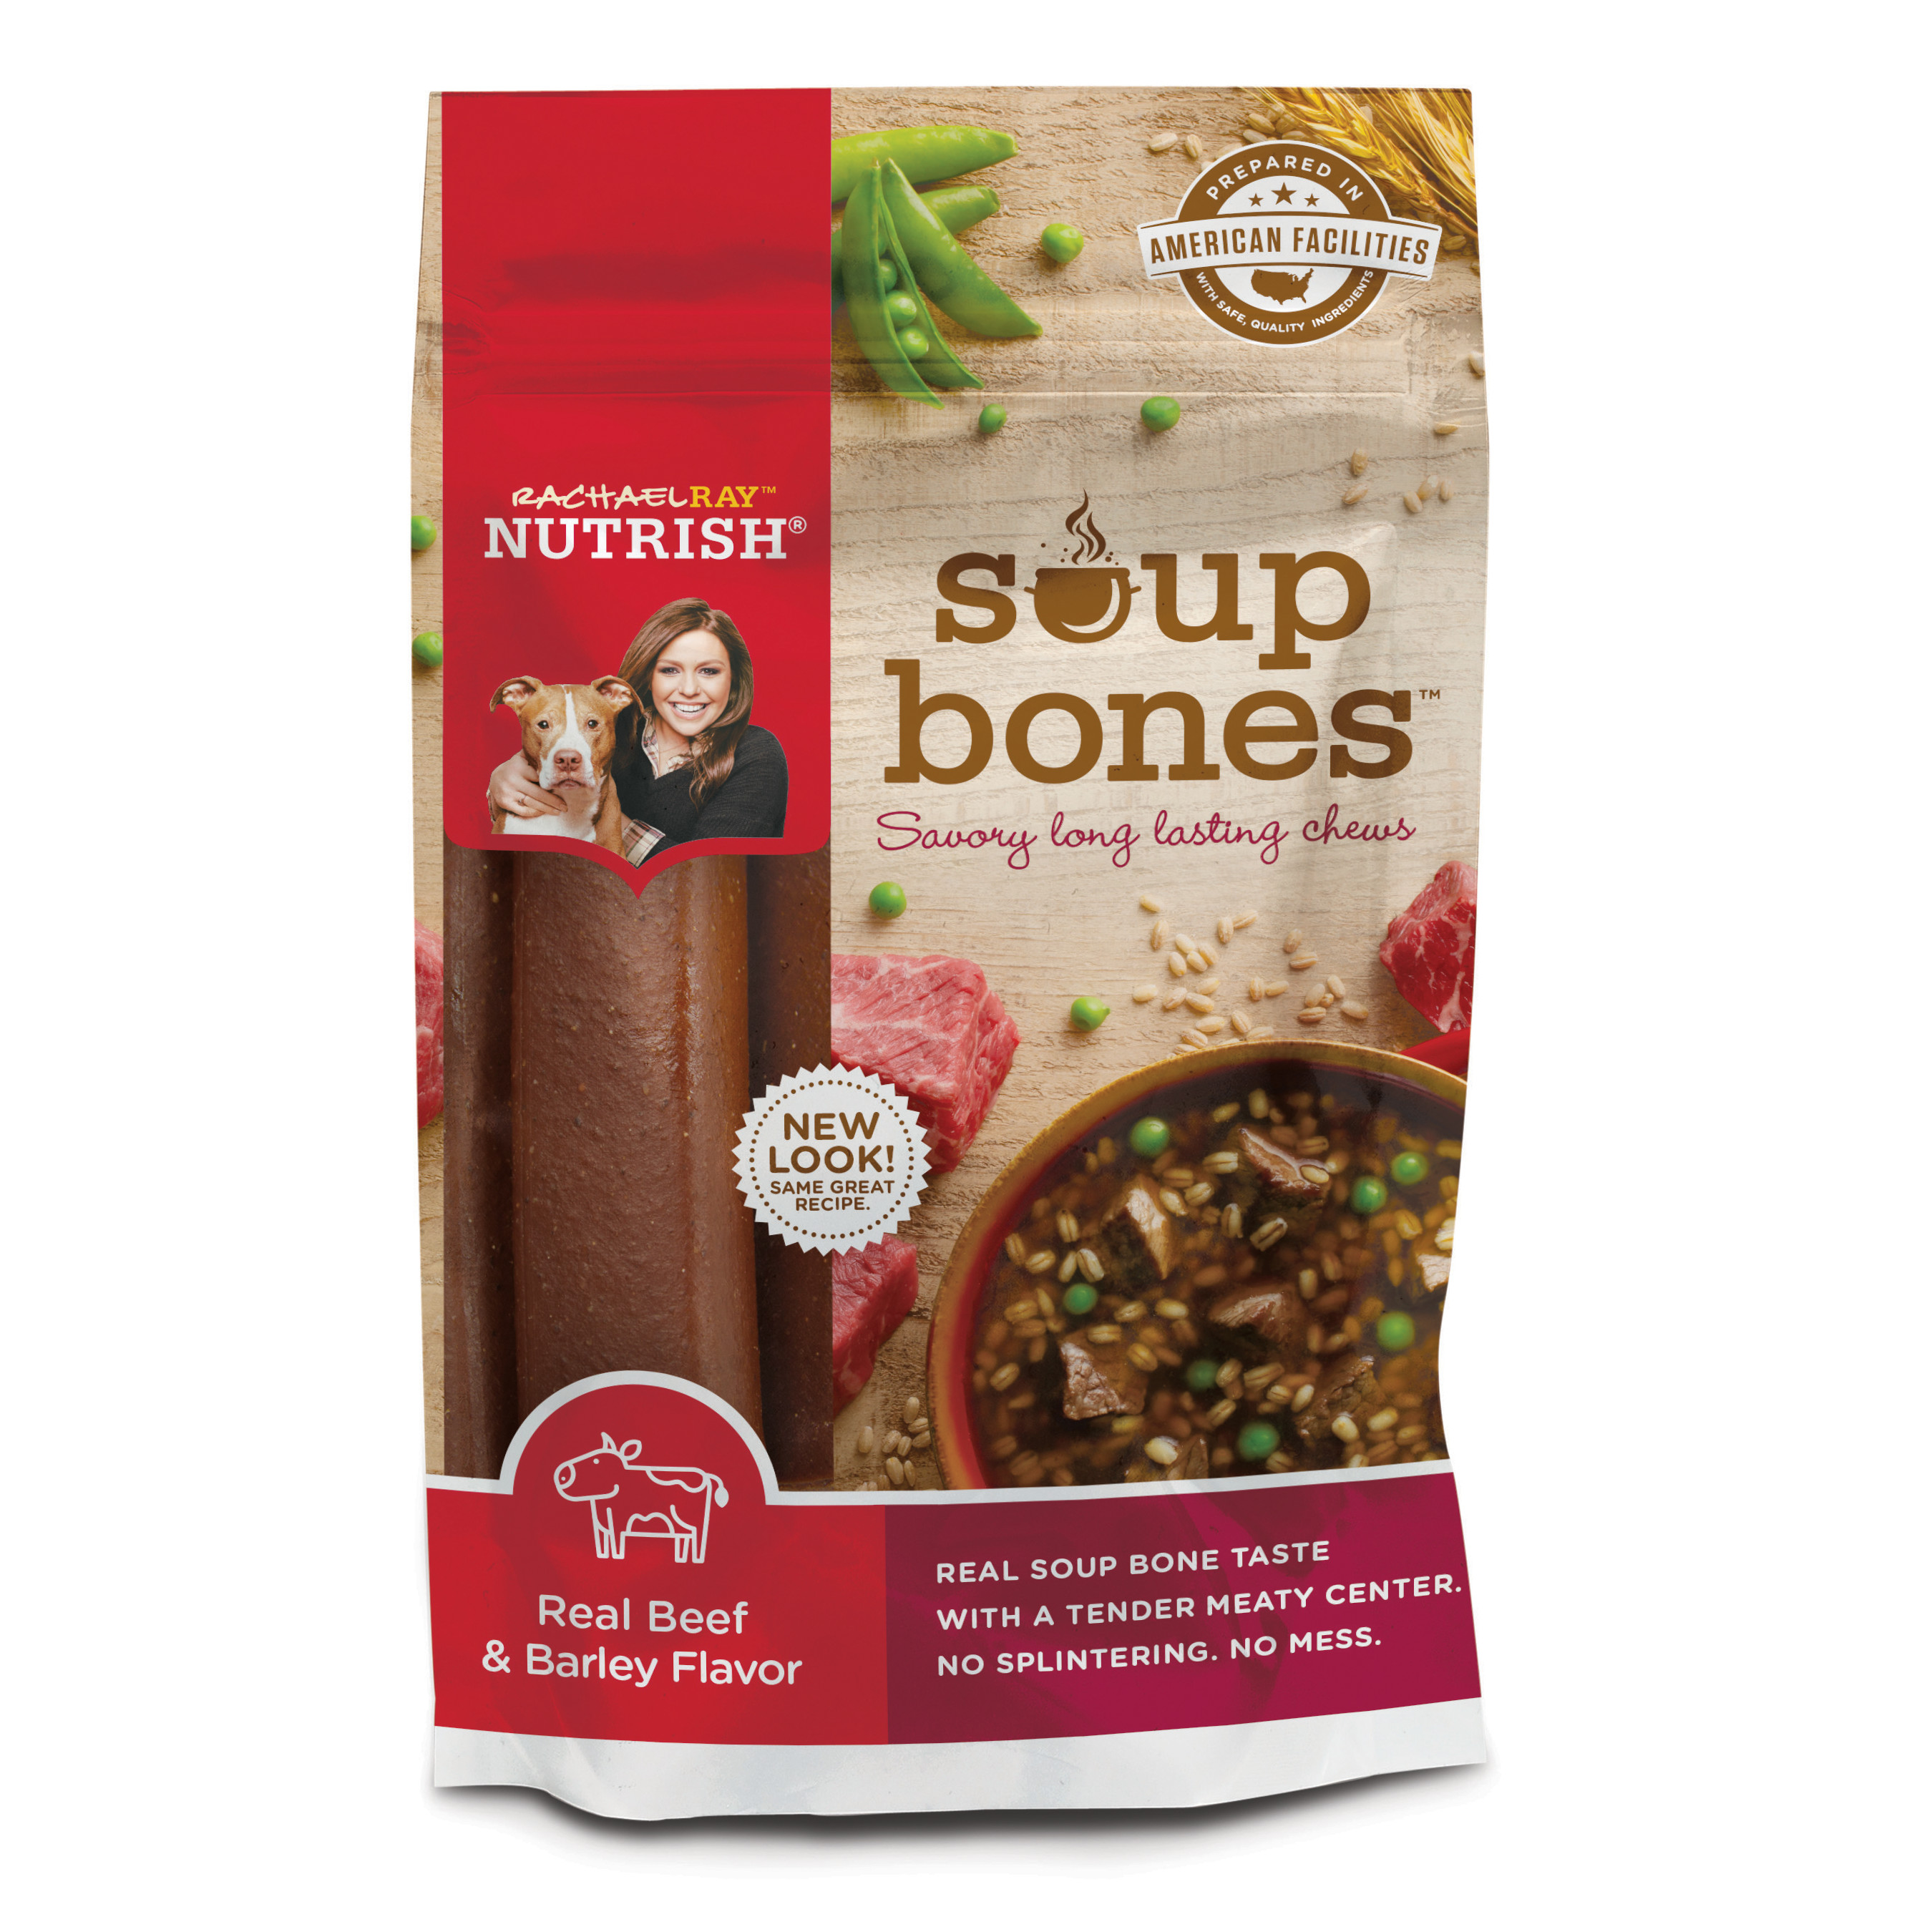 Rachael Ray Nutrish Soup Bones Dog Treats, Beef & Barley Flavor, 12.6 oz